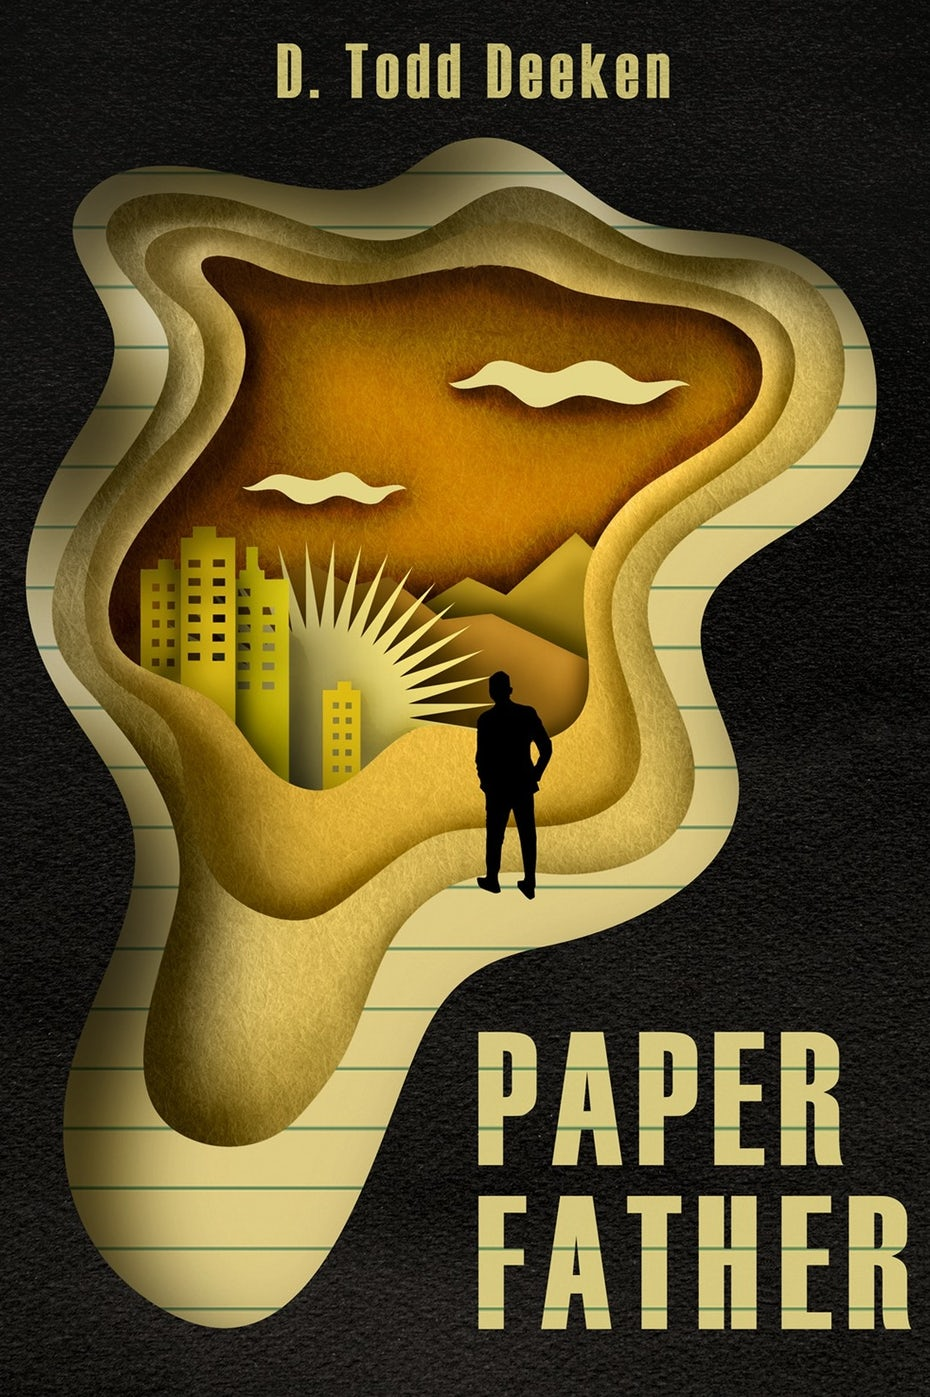 black book cover with yellow papercut image of a man looking into a landscape